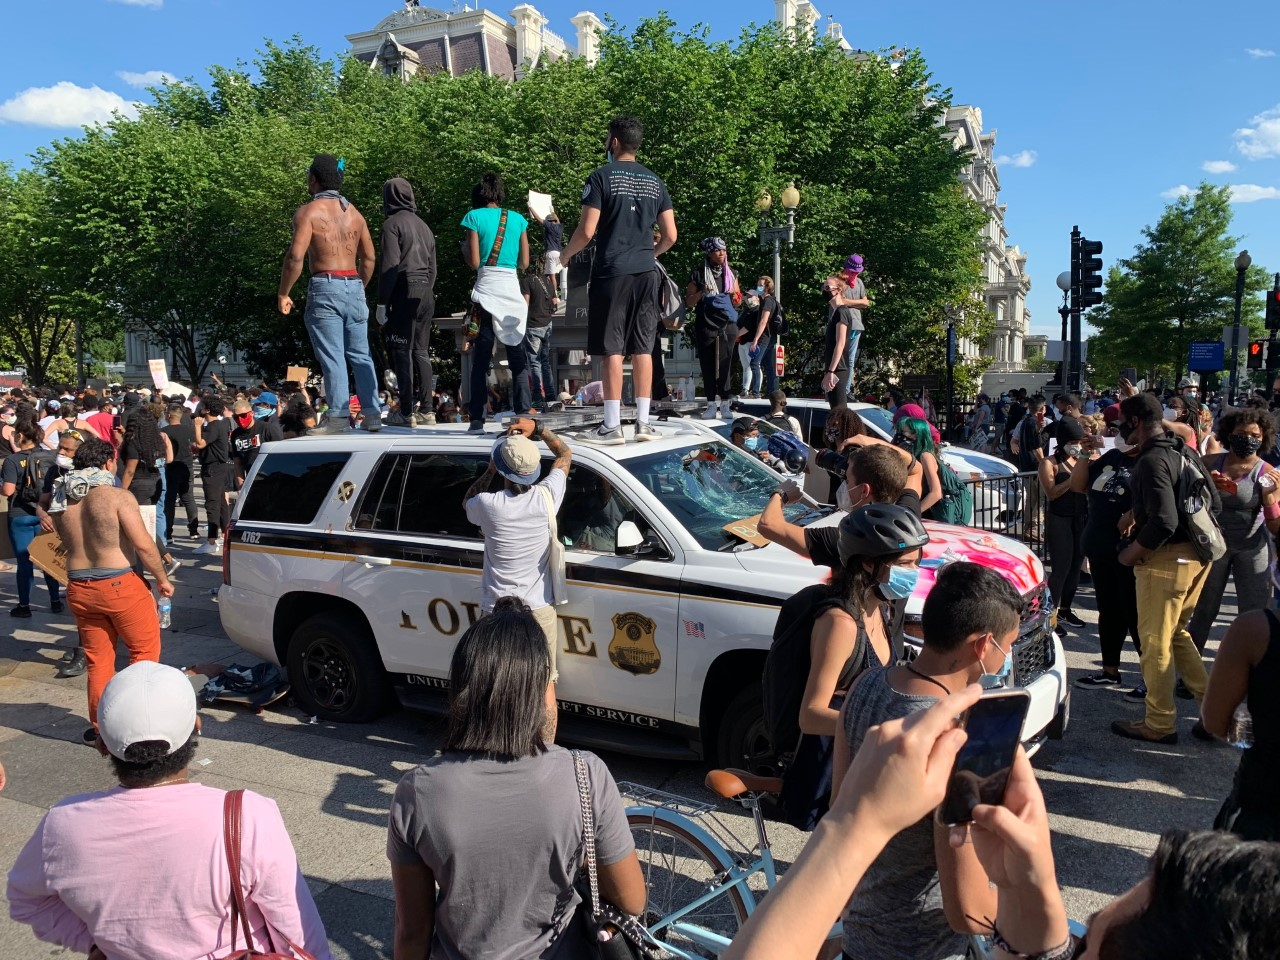 Protesters standing atop three Secret Service vehicles that were damaged outside the White House on May 30, 2020.